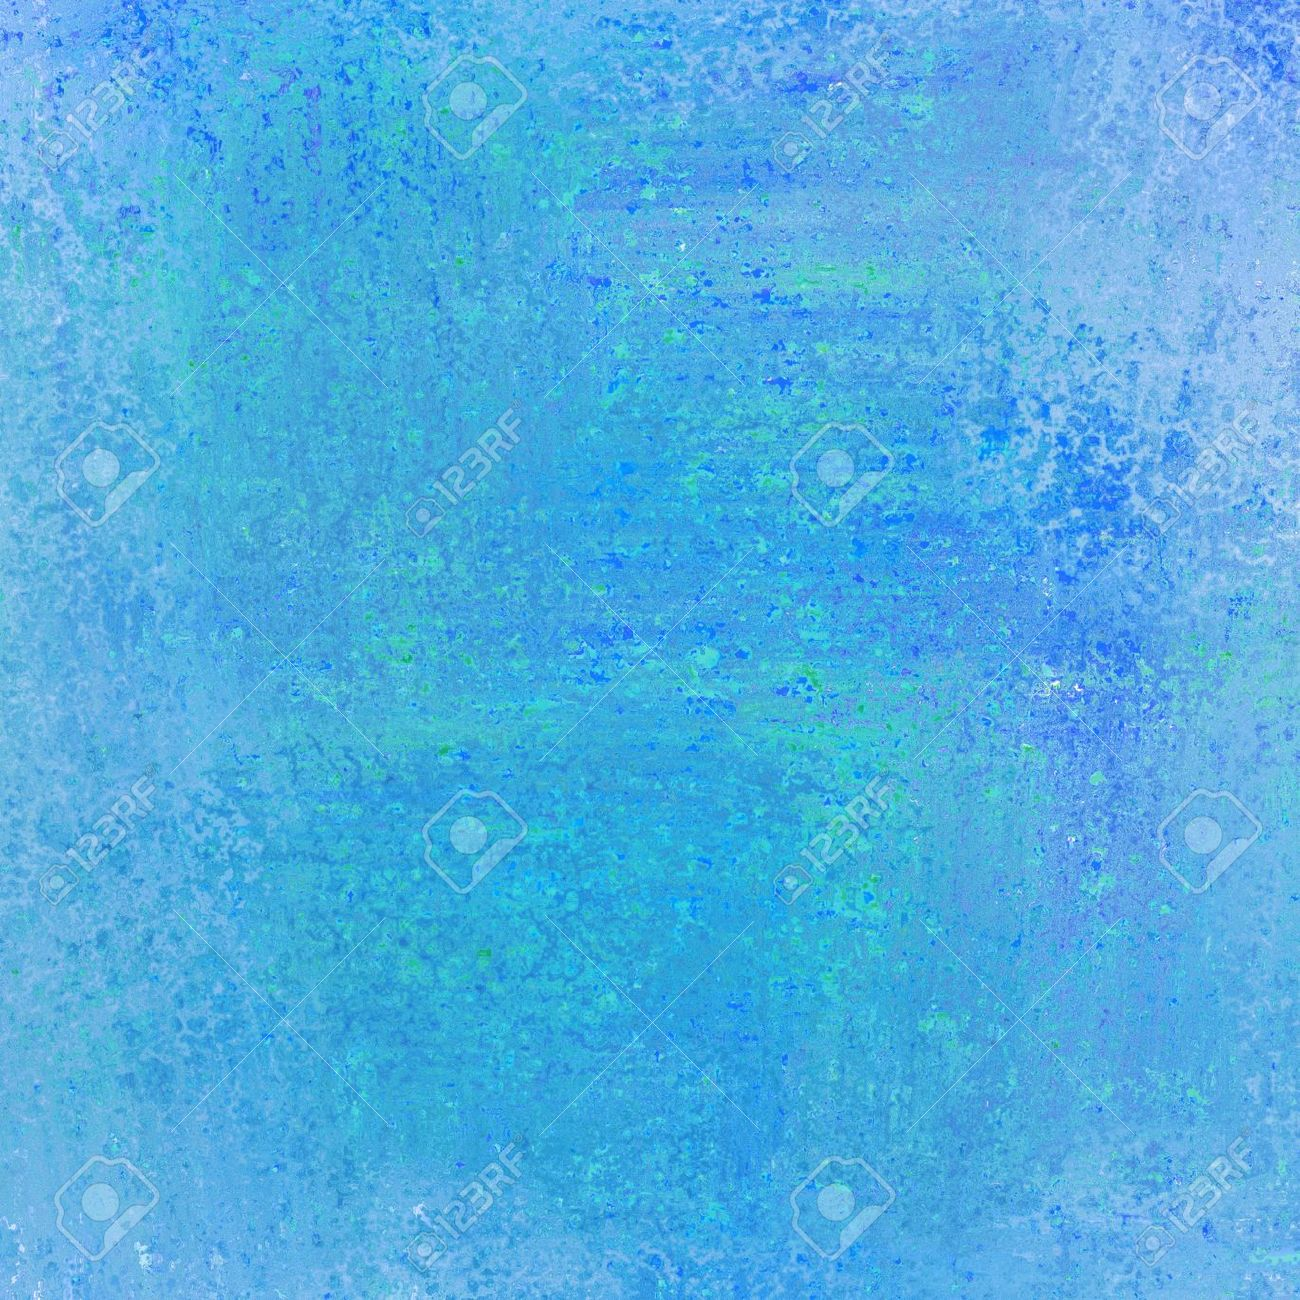 Abstract Blue Background Paper Layout With Rough Messy Old Vintage Texture Or Wallpaper Light